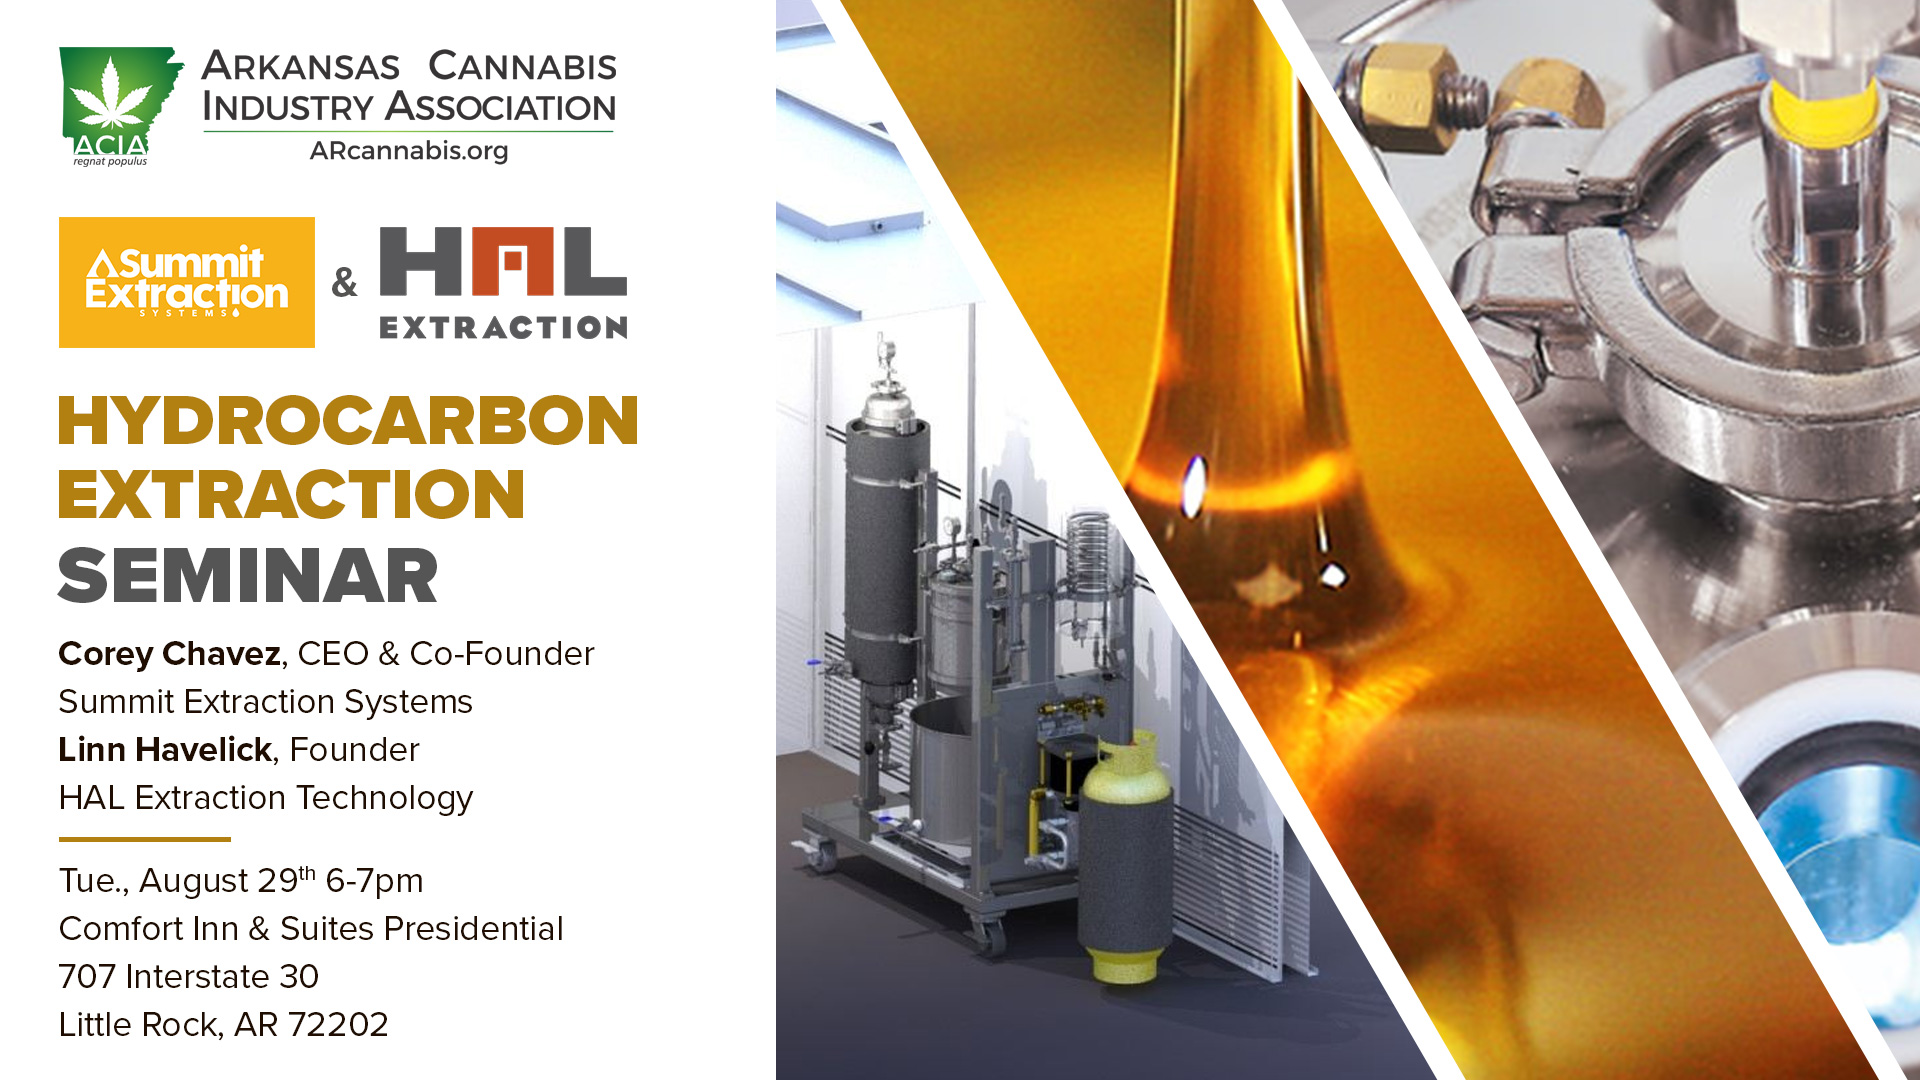 Hydrocarbon Extraction Seminar – with Summit Extraction Systems and HAL Extraction Technology